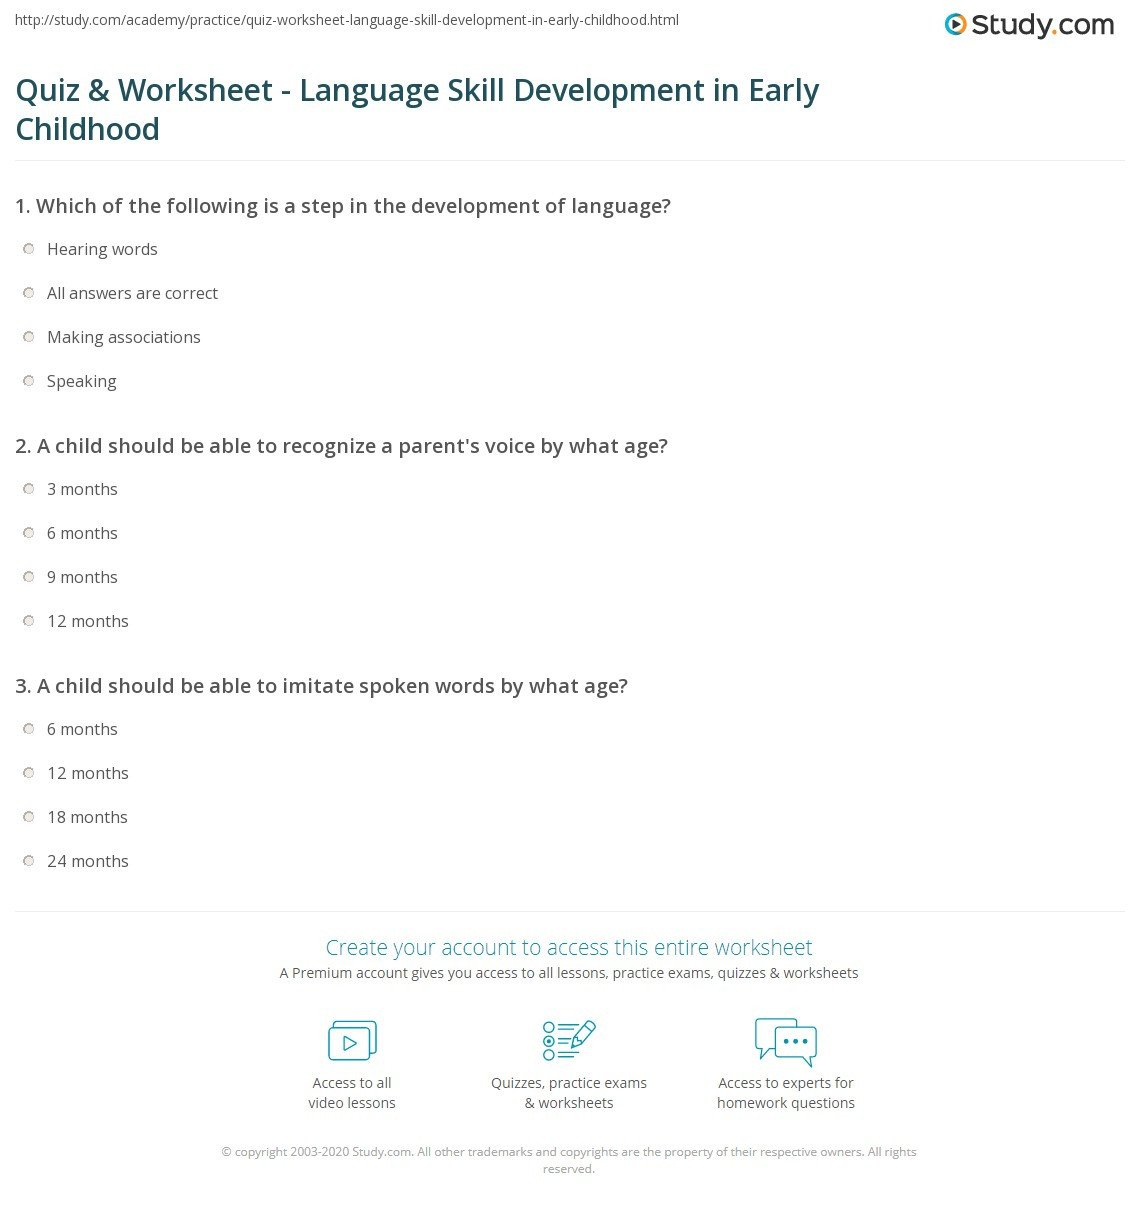 quiz worksheet language skill development in early childhood